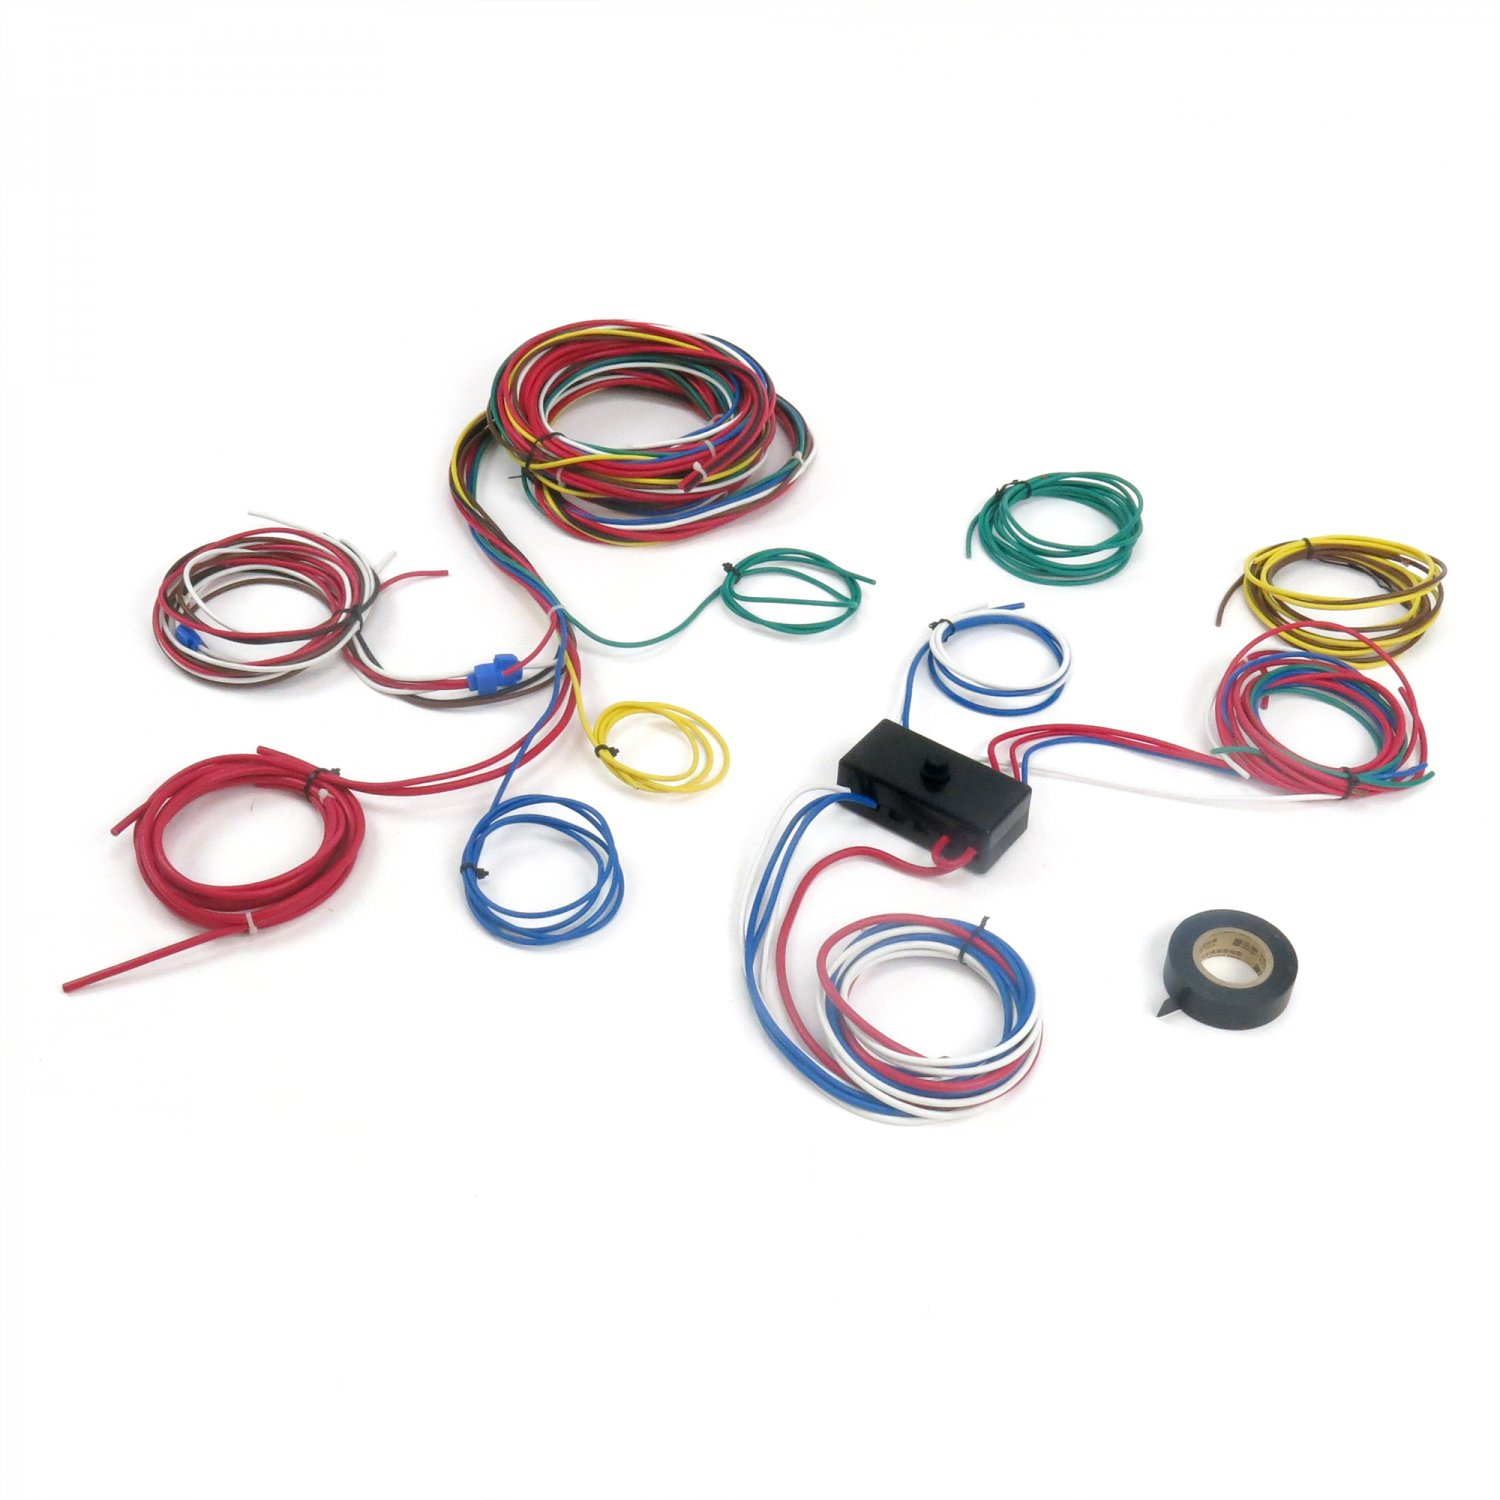 vw buggy wiring harness dune buggy wiring harness dune buggy universal wiring harness w/ fuse box fits empi ...